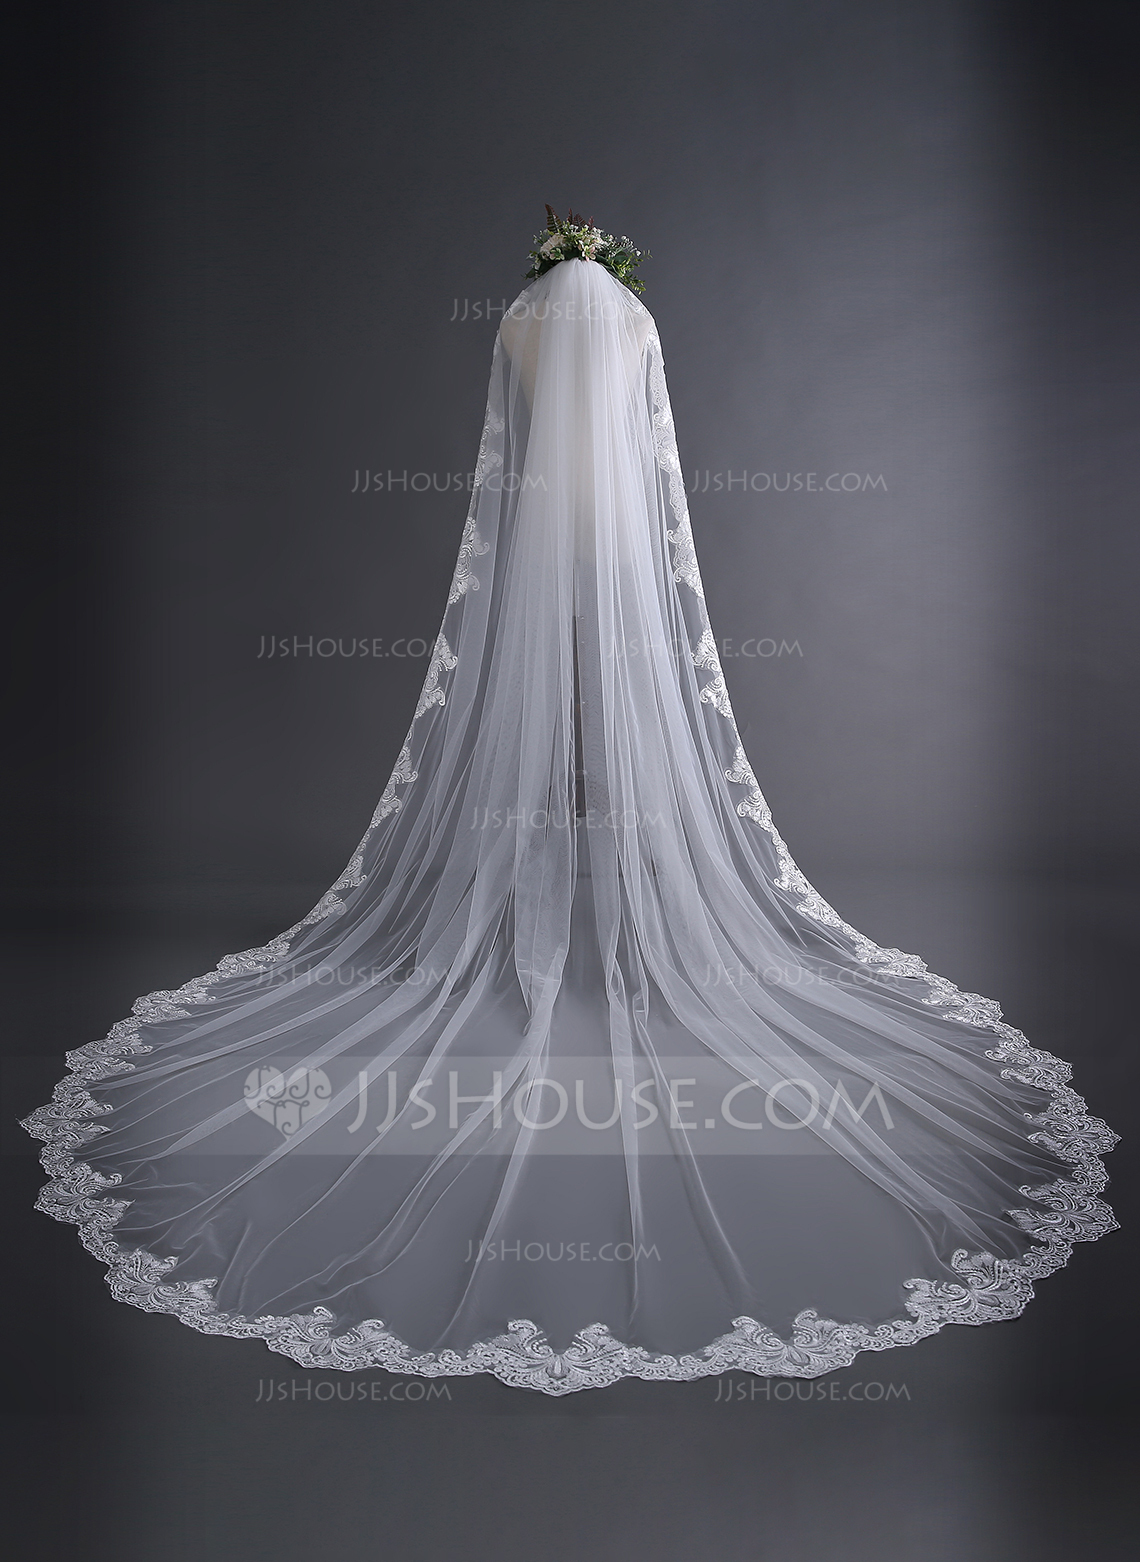 One Tier Lace Applique Edge Cathedral Bridal Veils